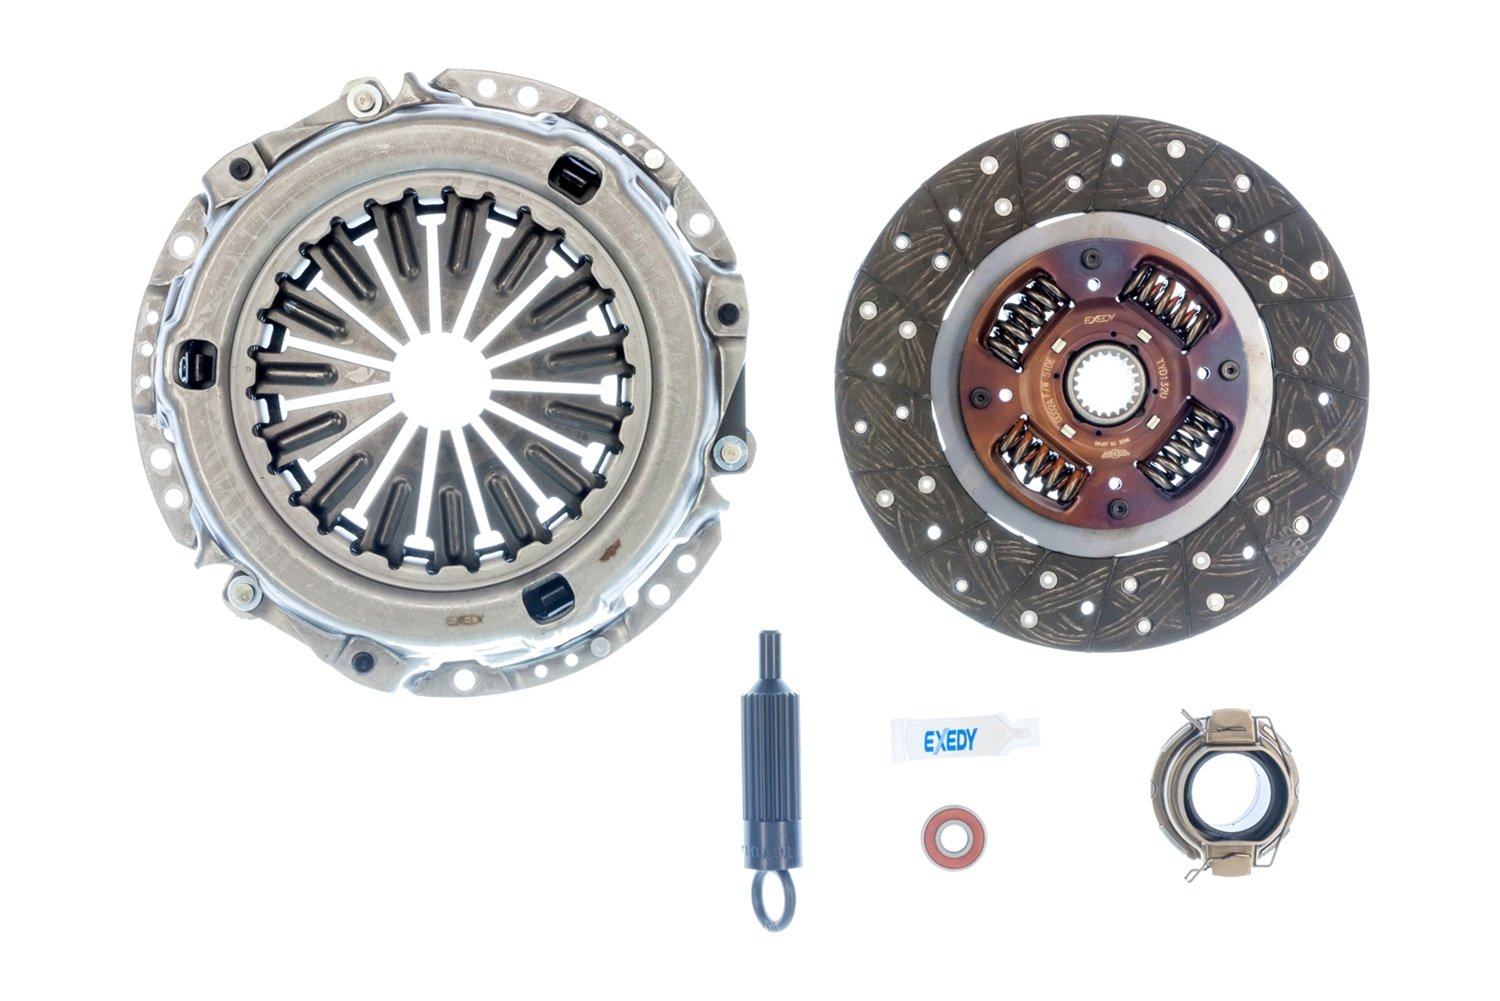 EXEDY 16087 OEM Replacement Clutch Kit by Exedy (Image #1)